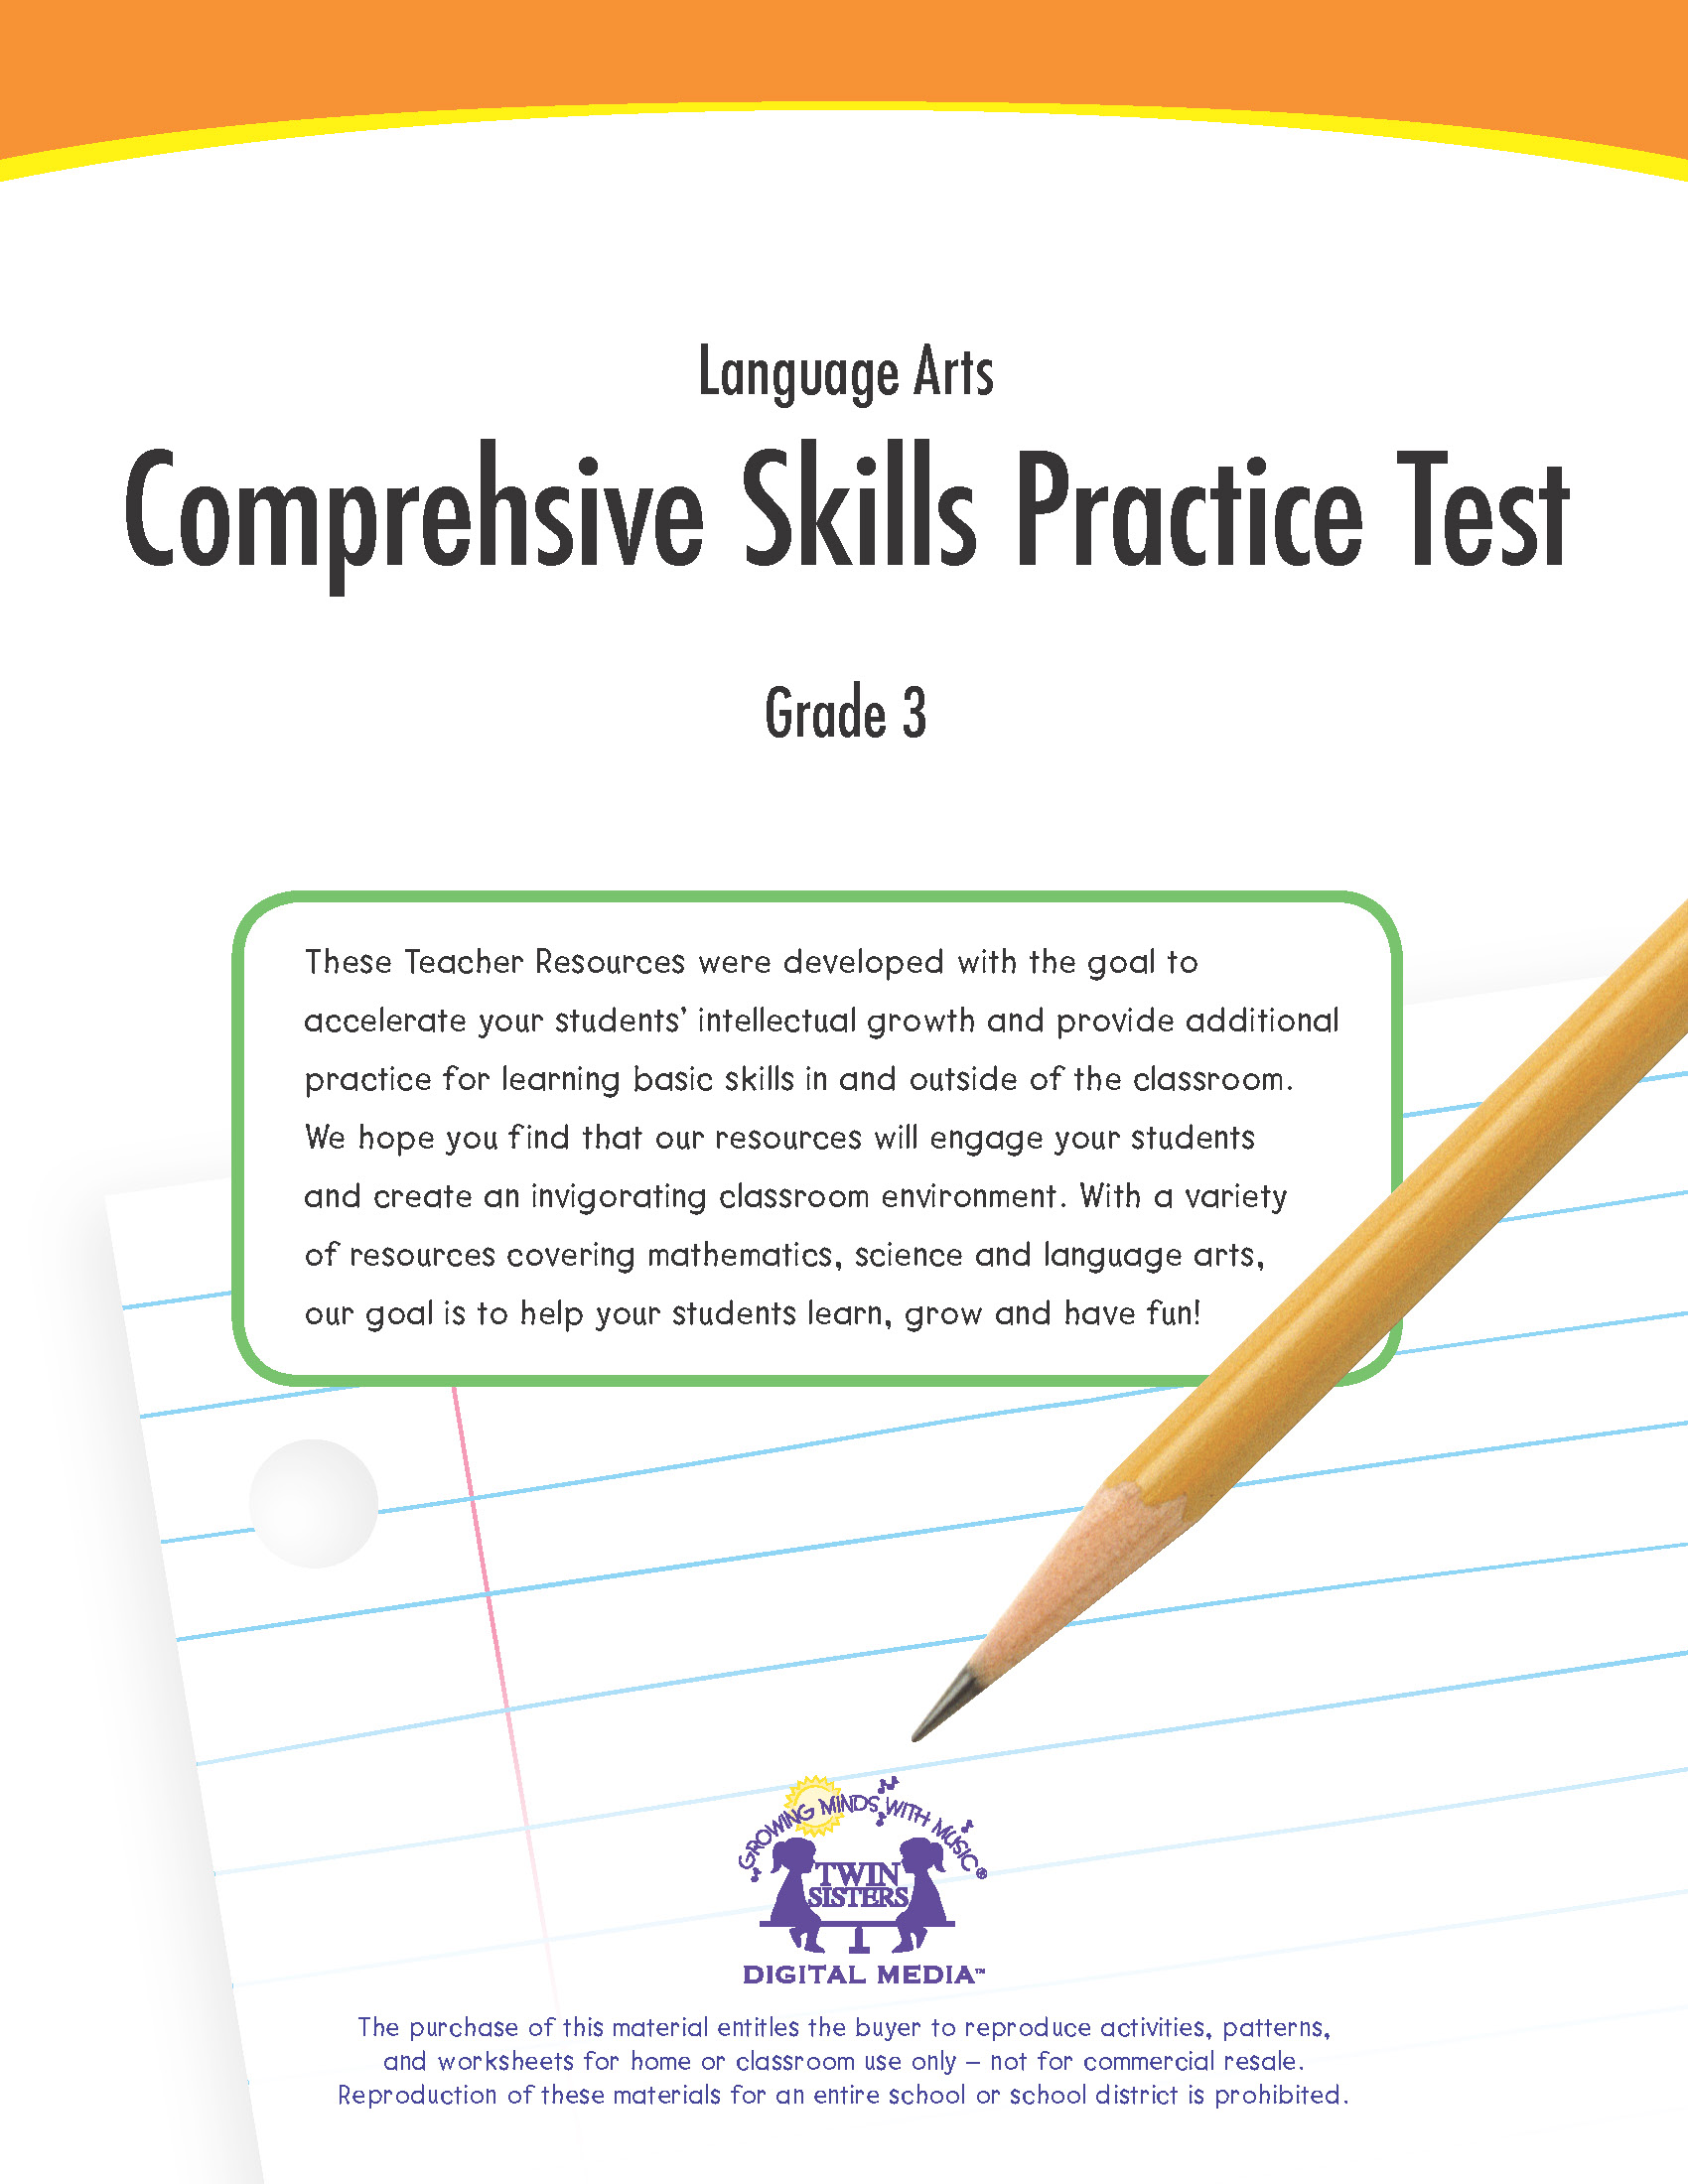 Language Arts Grade 3 Comprehensive Skills Practice Test